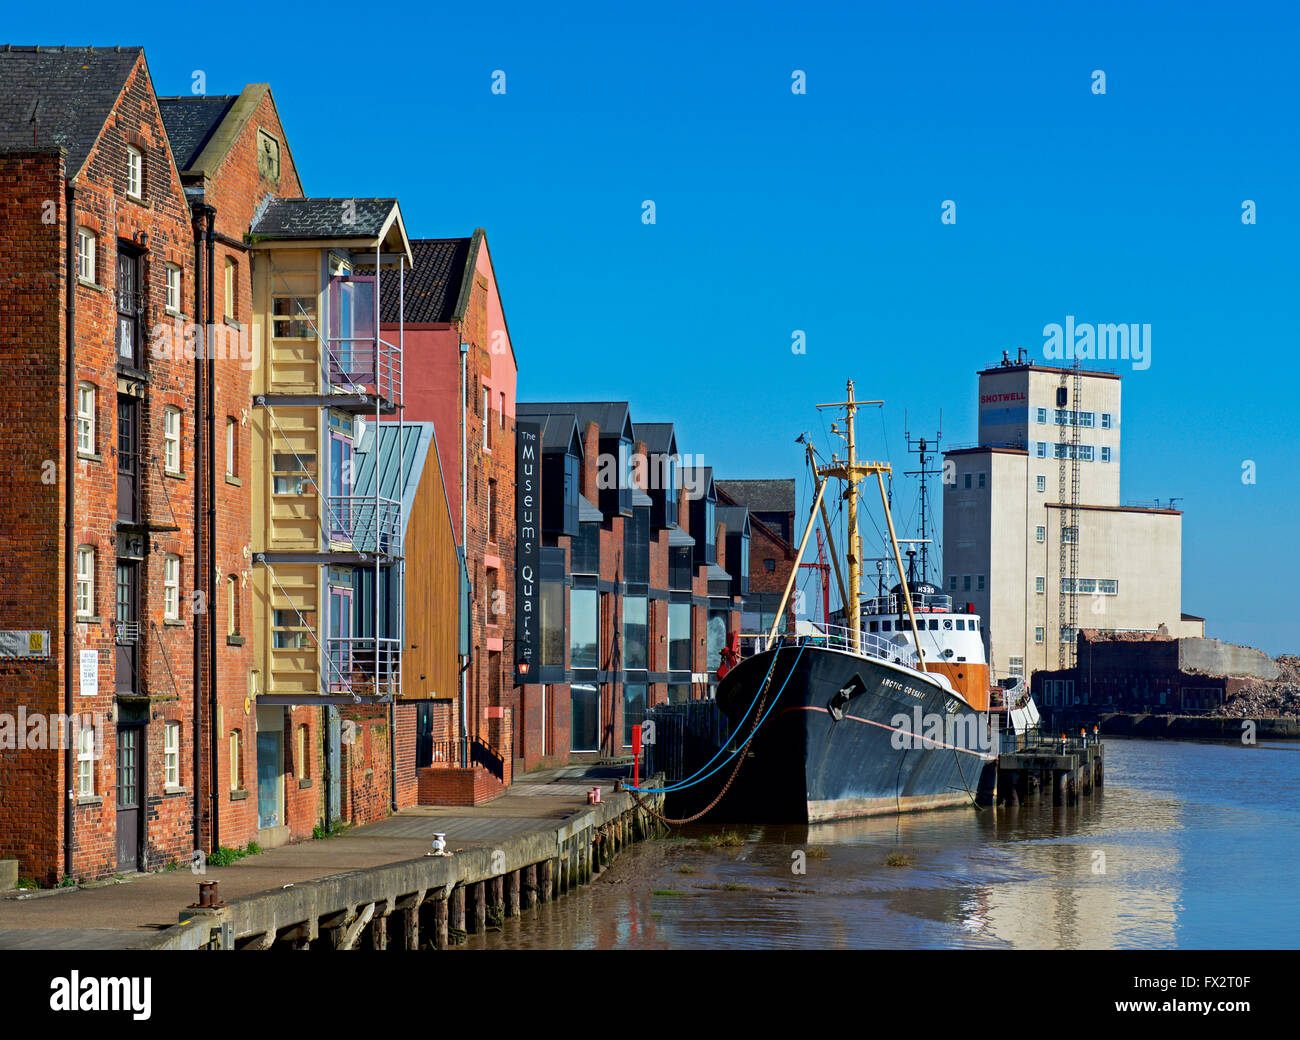 Trawler, the Arctic Corsair, moored on the River Hull, Hull, East Riding of Yorkshire, Humberside, England UK - Stock Image